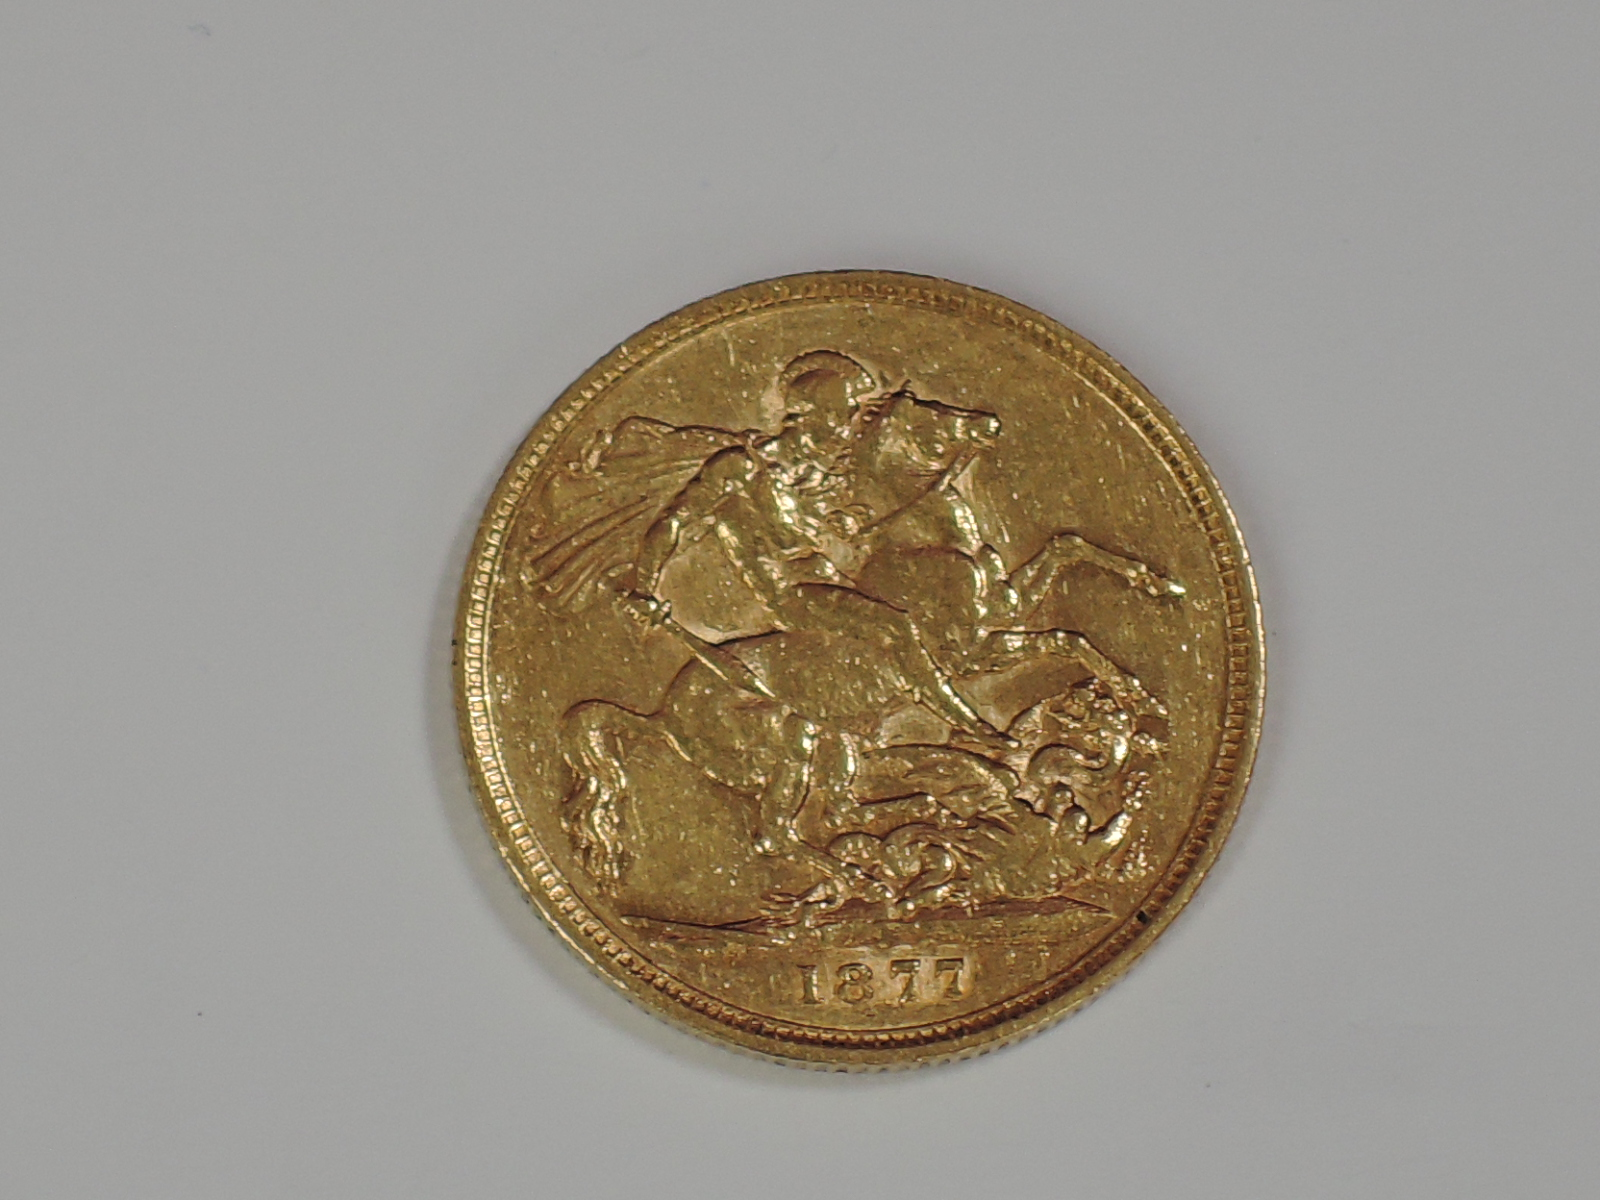 Lot 653 - A gold 1877 Great Britain Victoria, young head Sovereign coin, in plastic case, Melbourne Mint